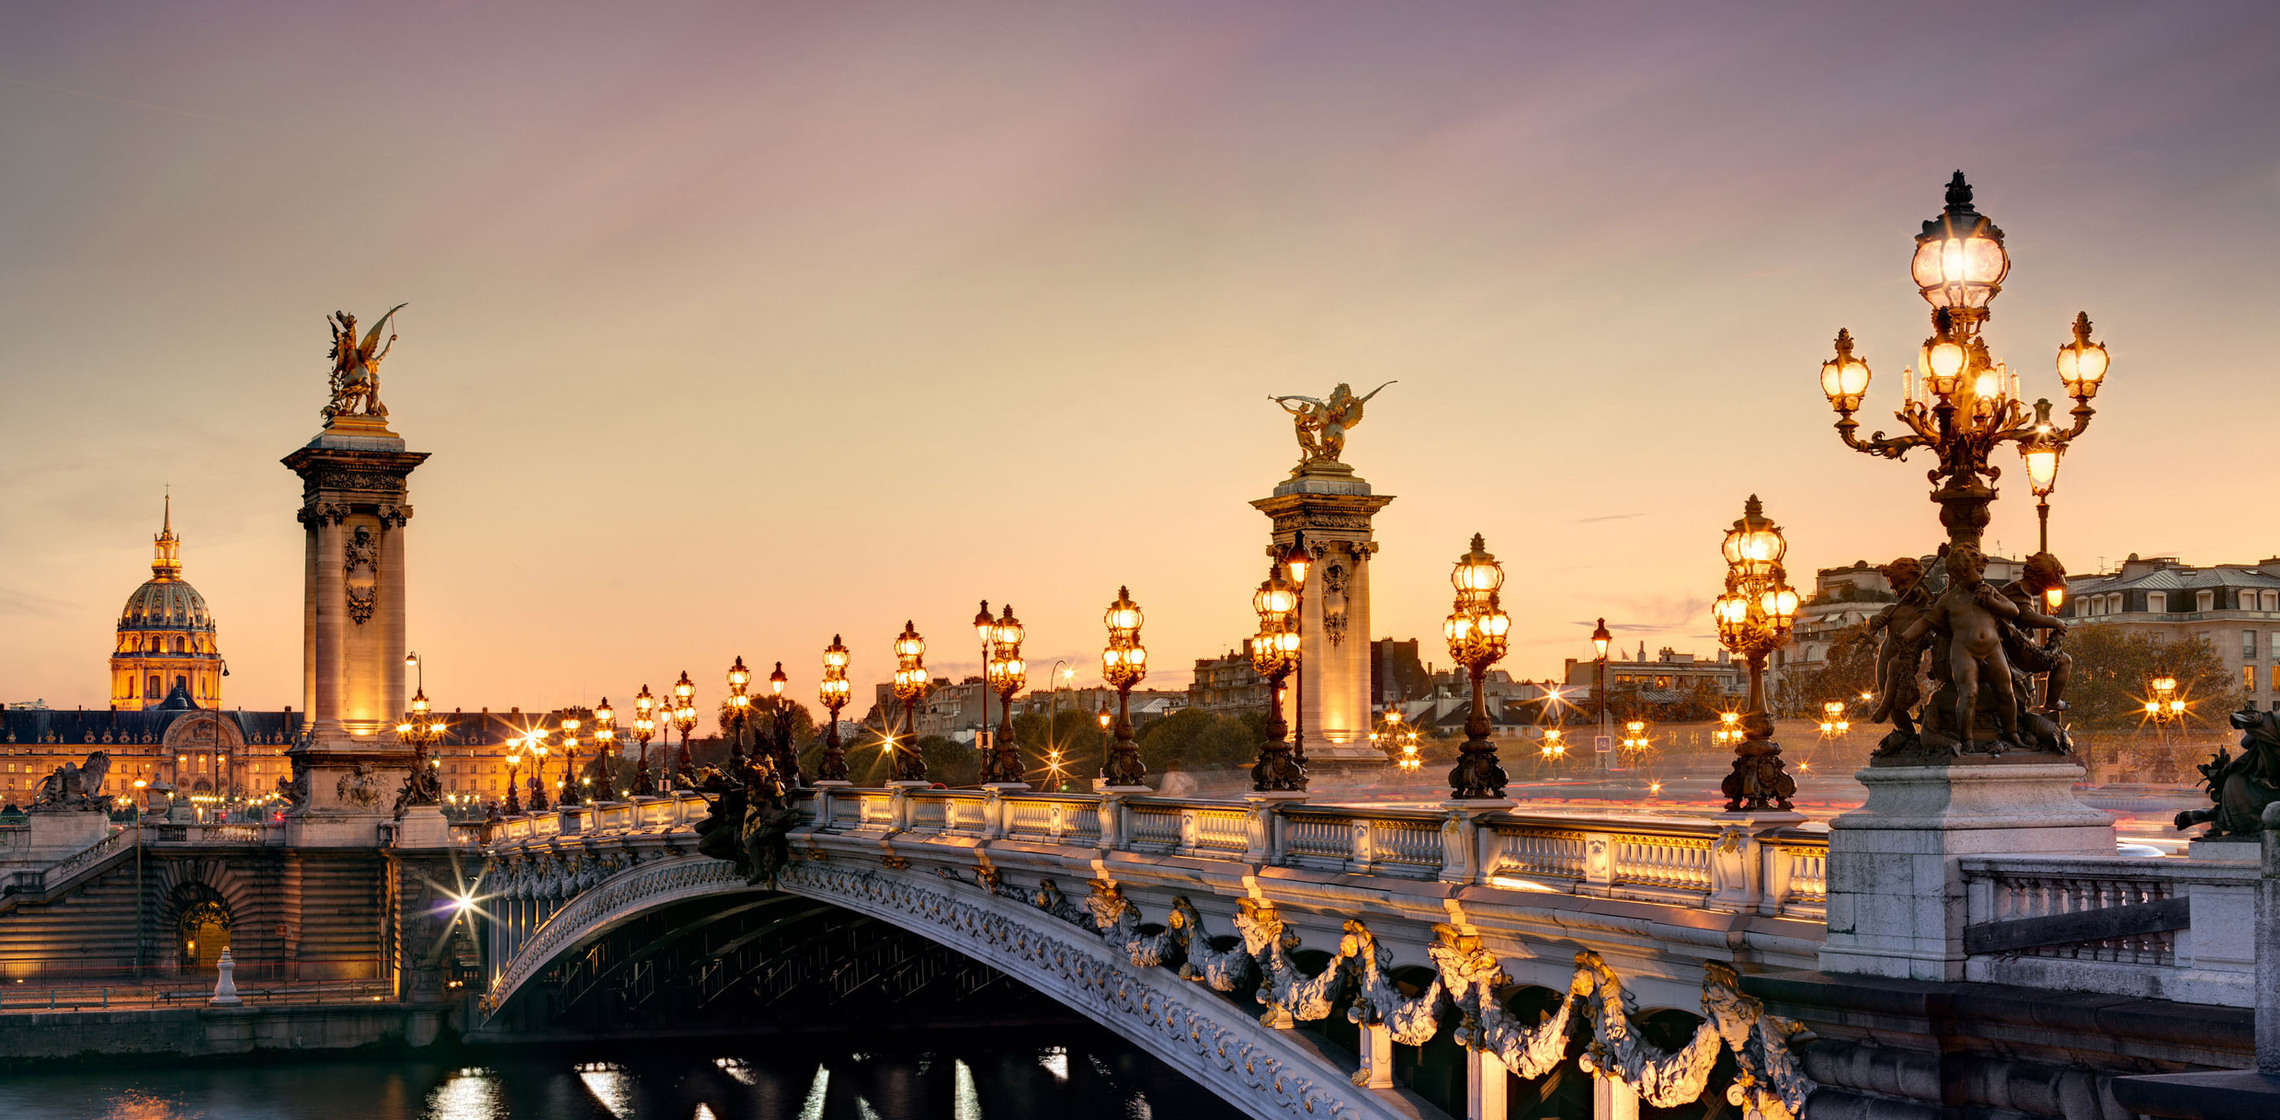 Guide for Maison & Objet: 10 must-see places to visit in Paris